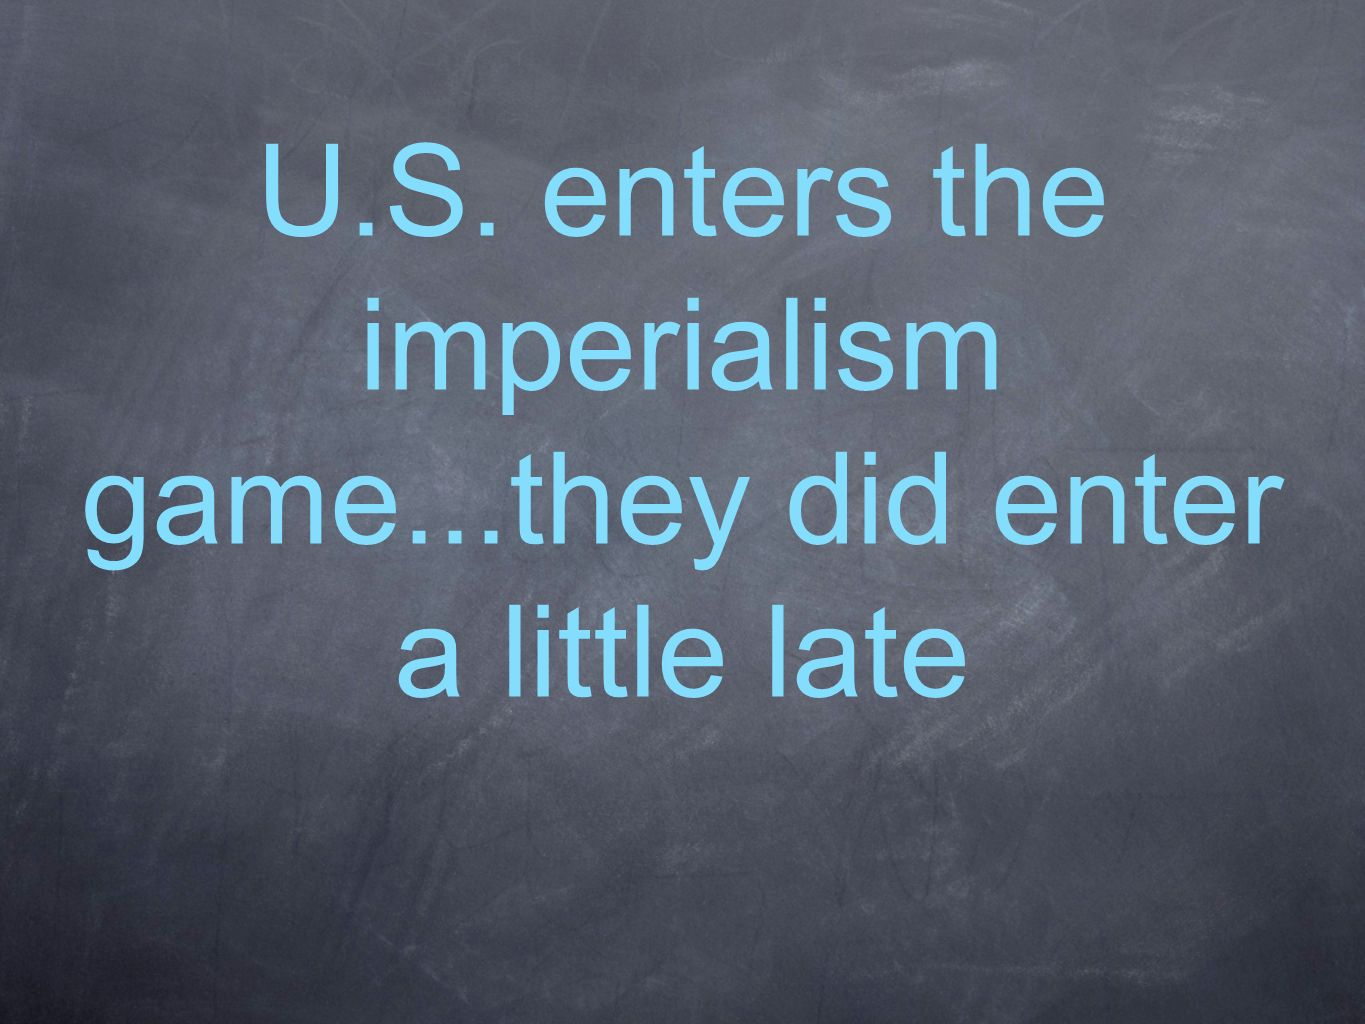 U.S. enters the imperialism game...they did enter a little late